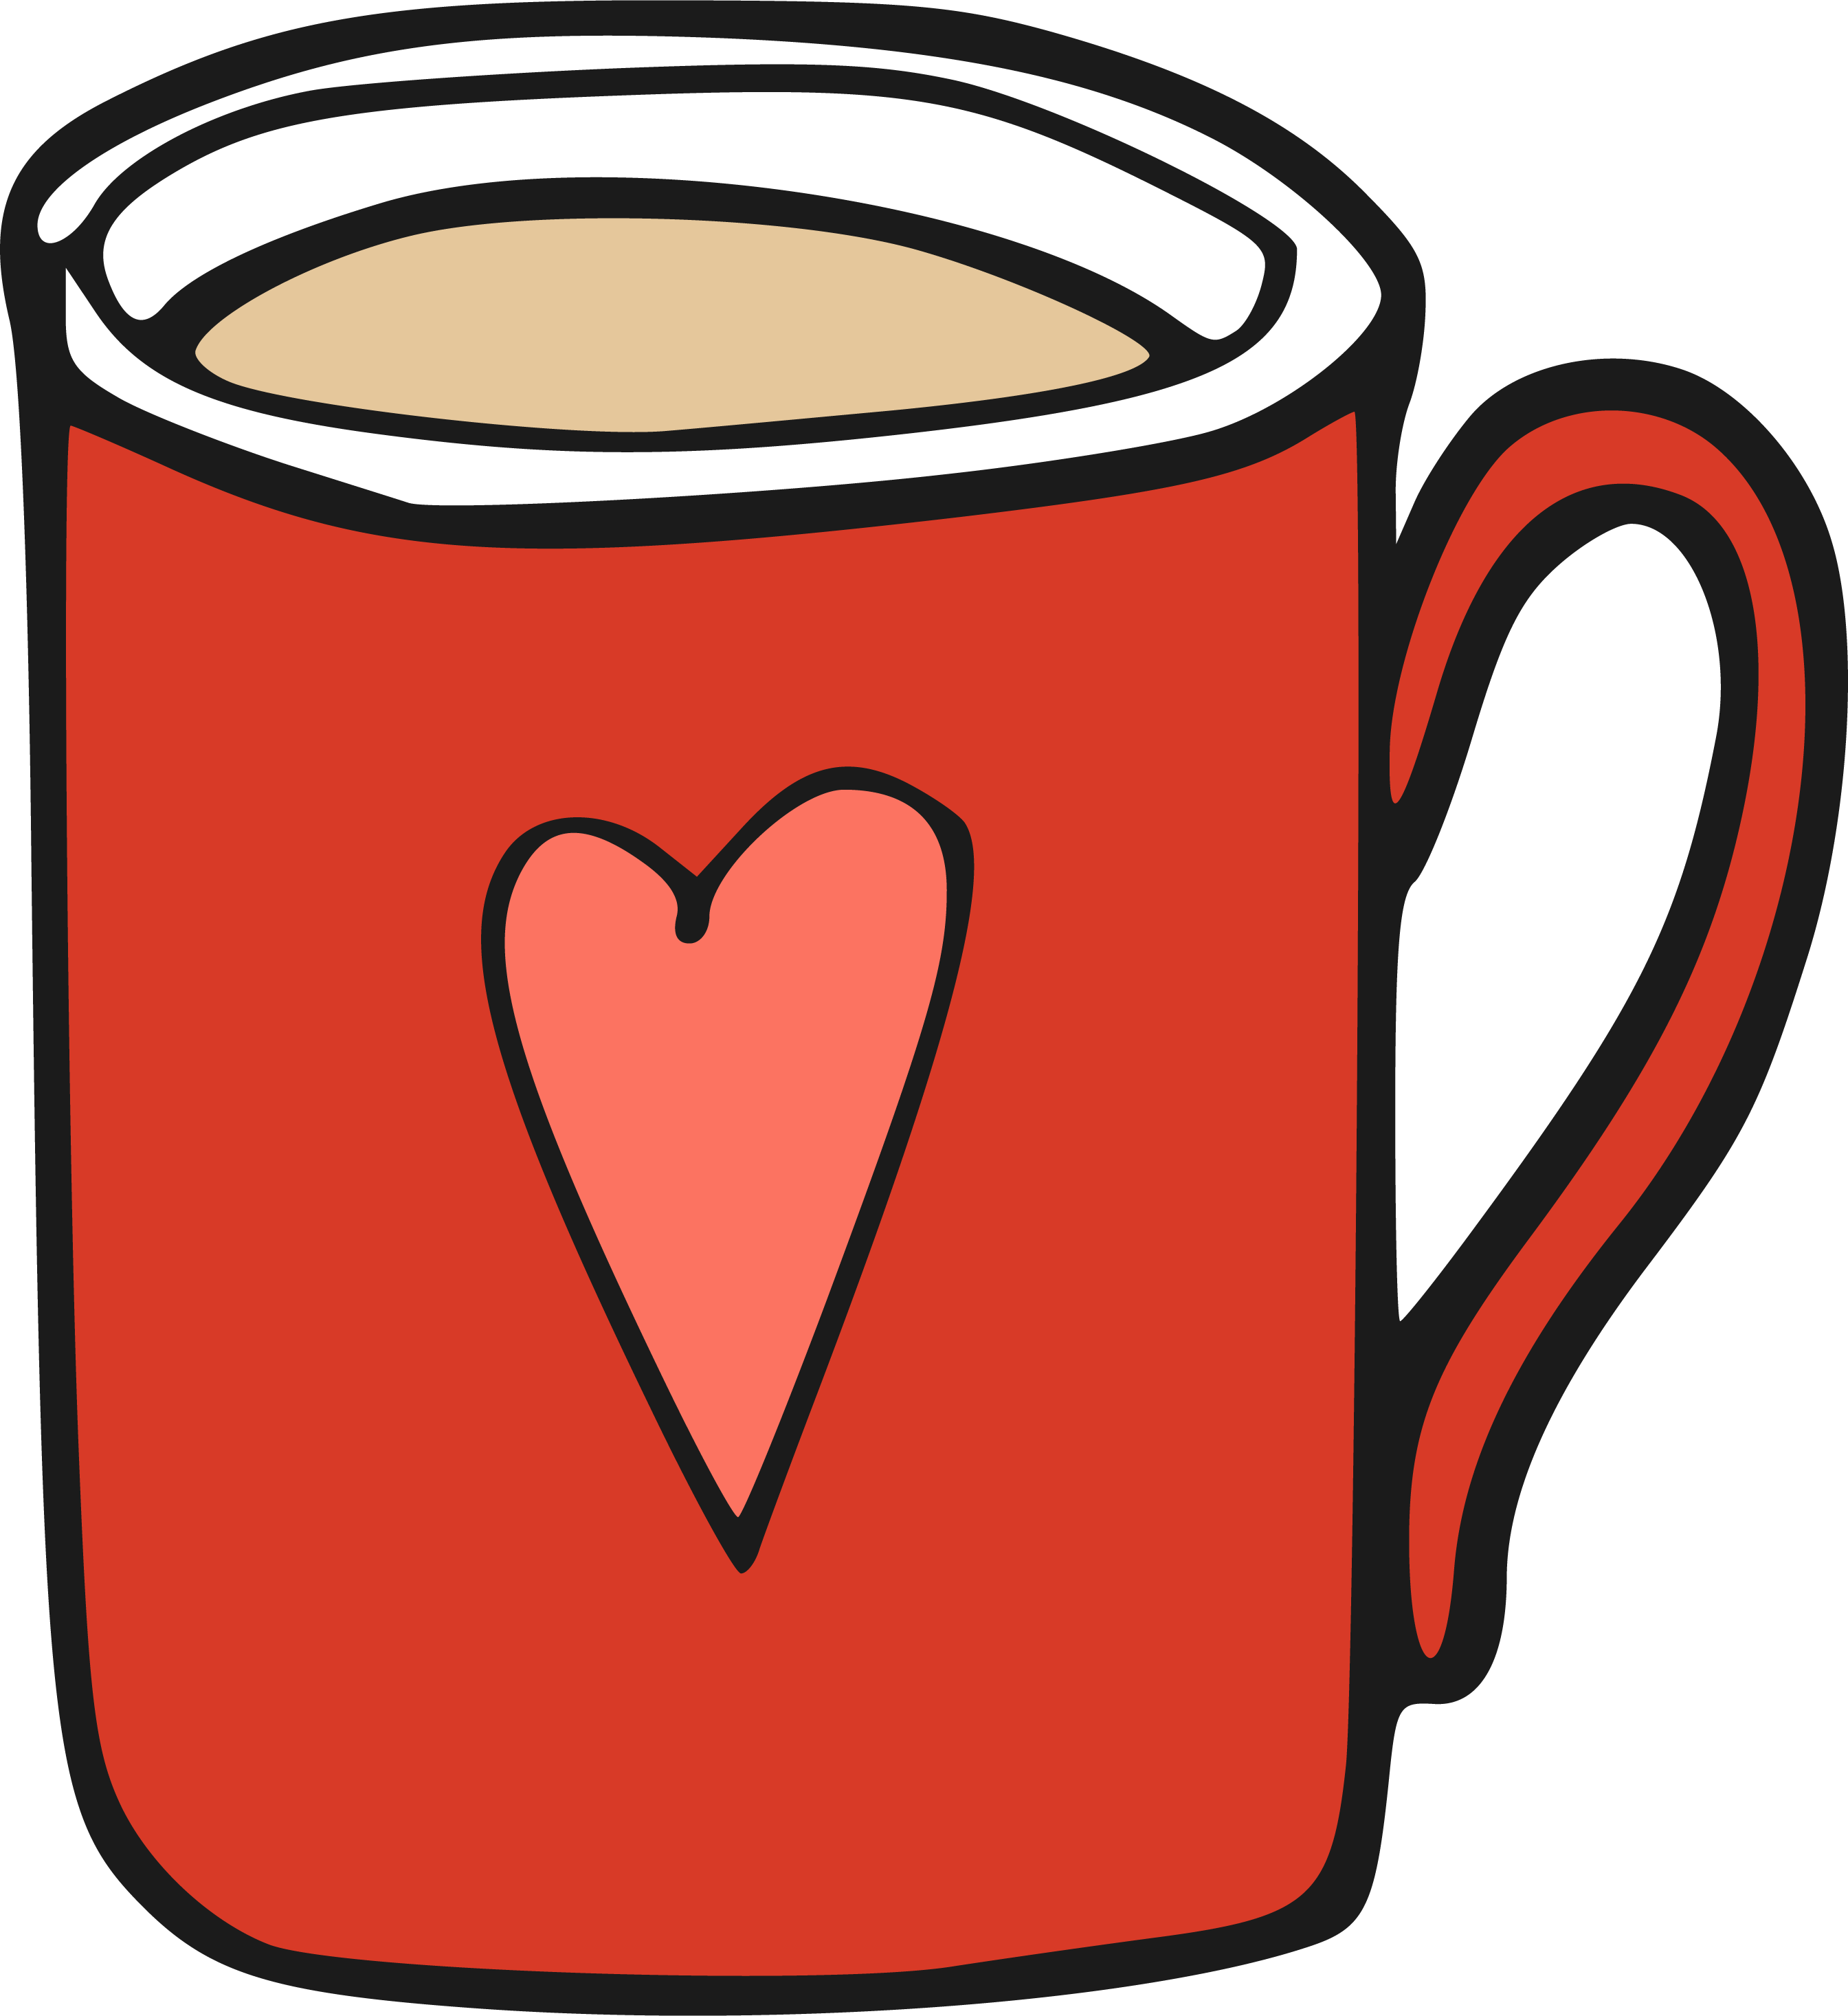 Cartoon coffee cup png. Mug clip art transprent